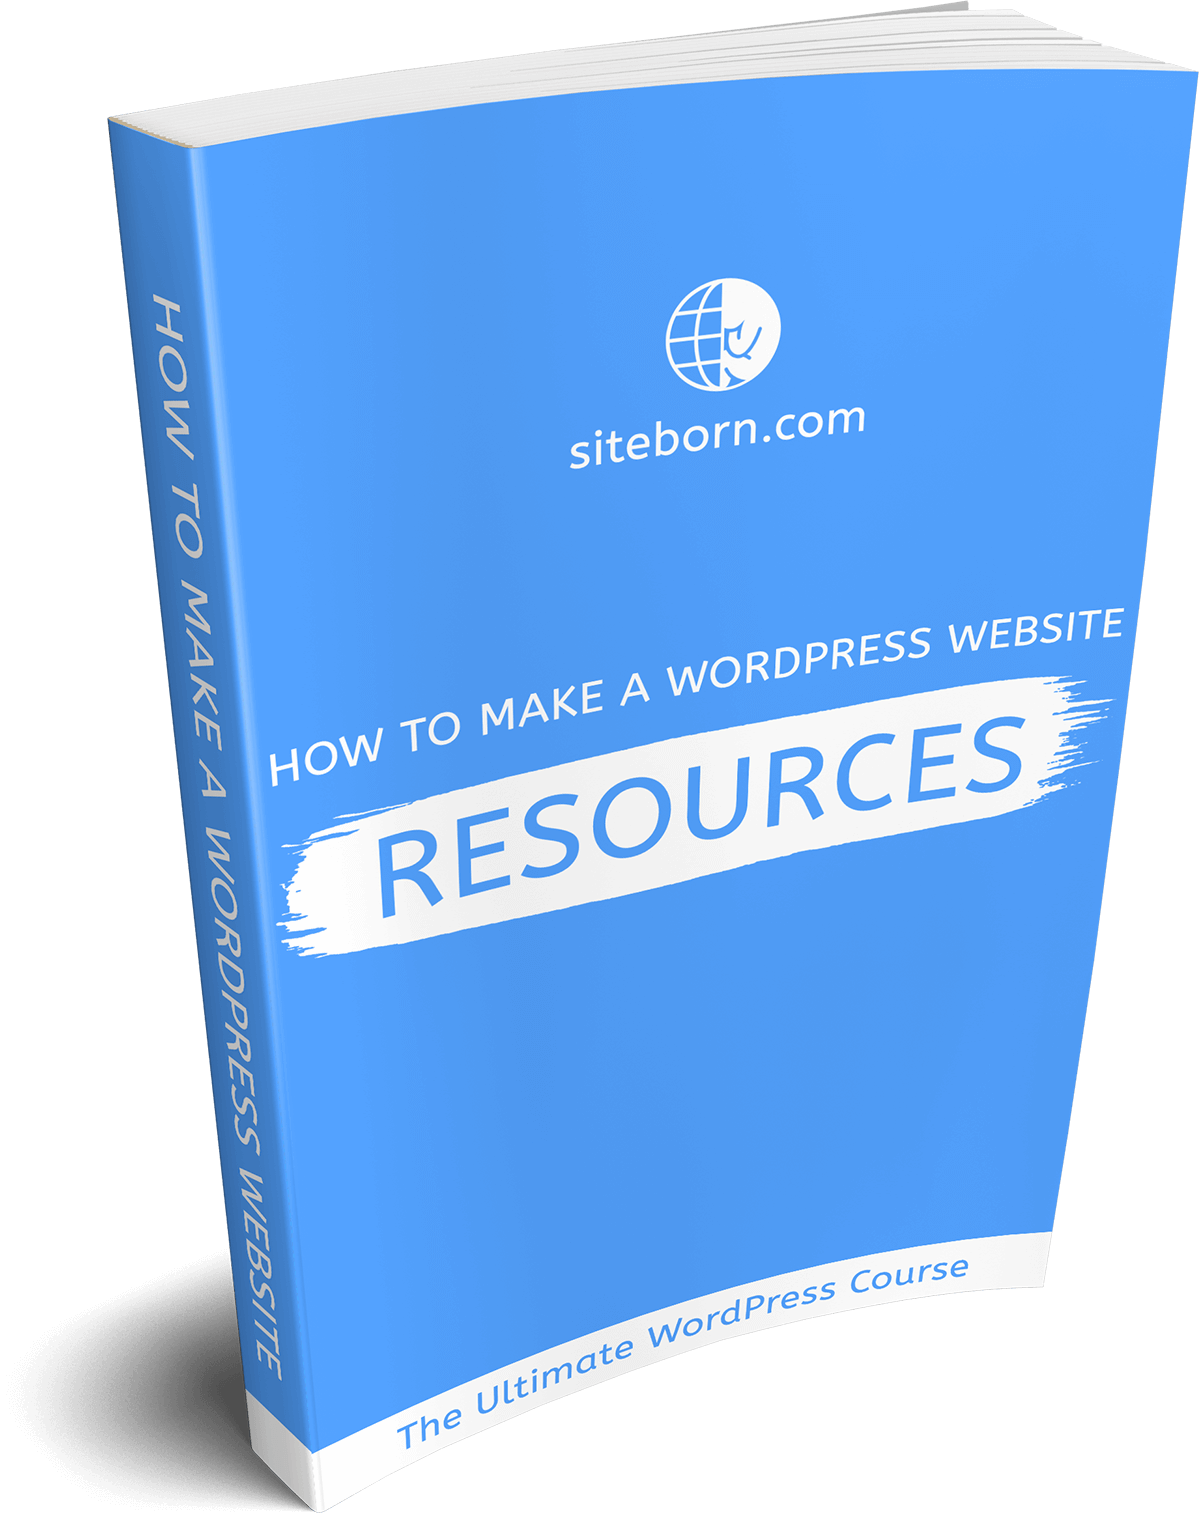 How to make a WordPress website resources